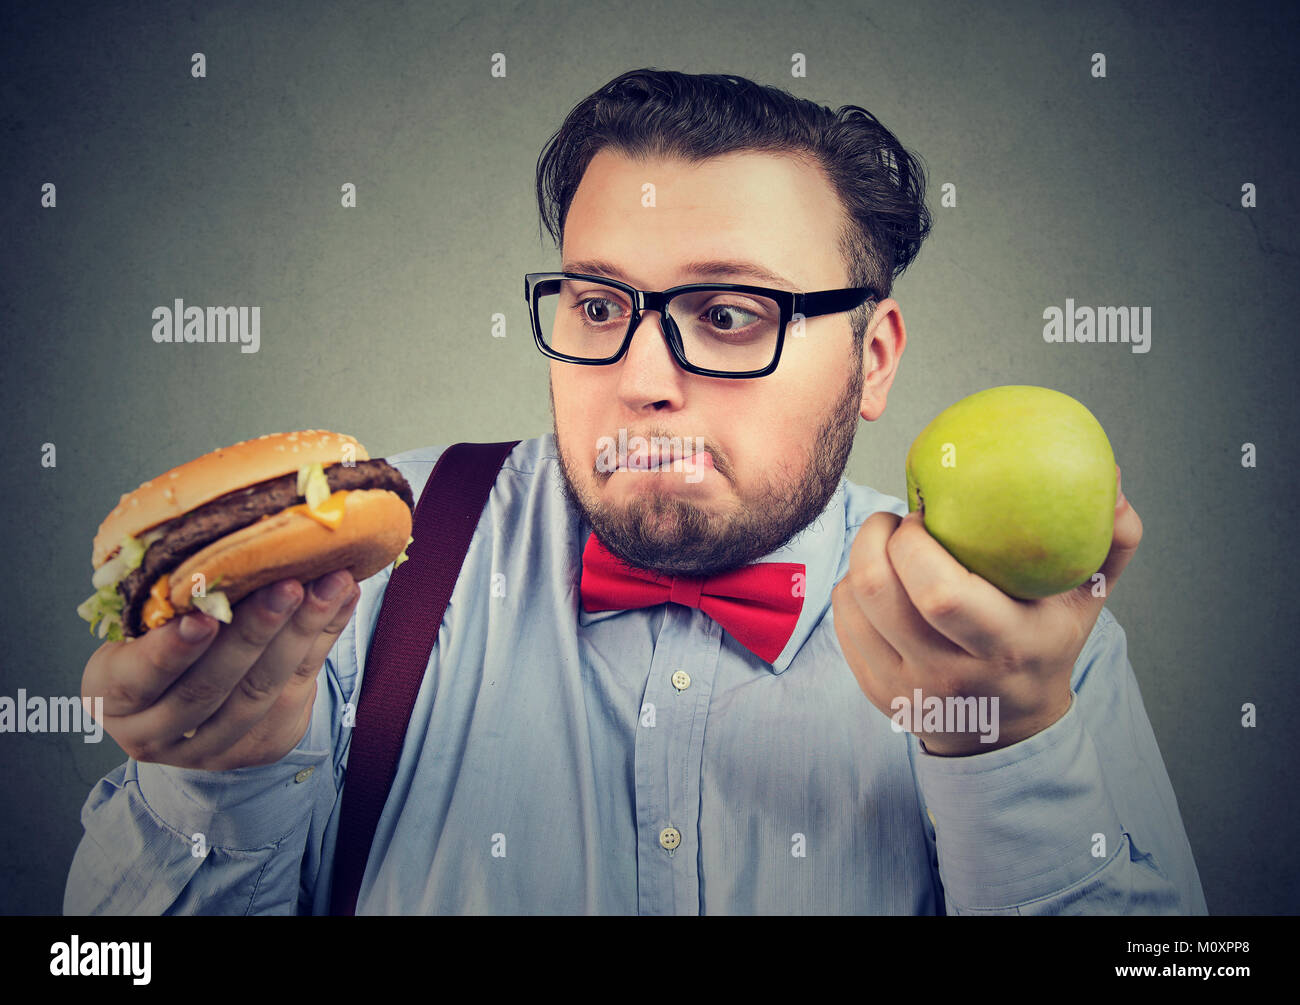 Chubby man in eyeglasses craving delicious burger instead of green apple looking confused. - Stock Image